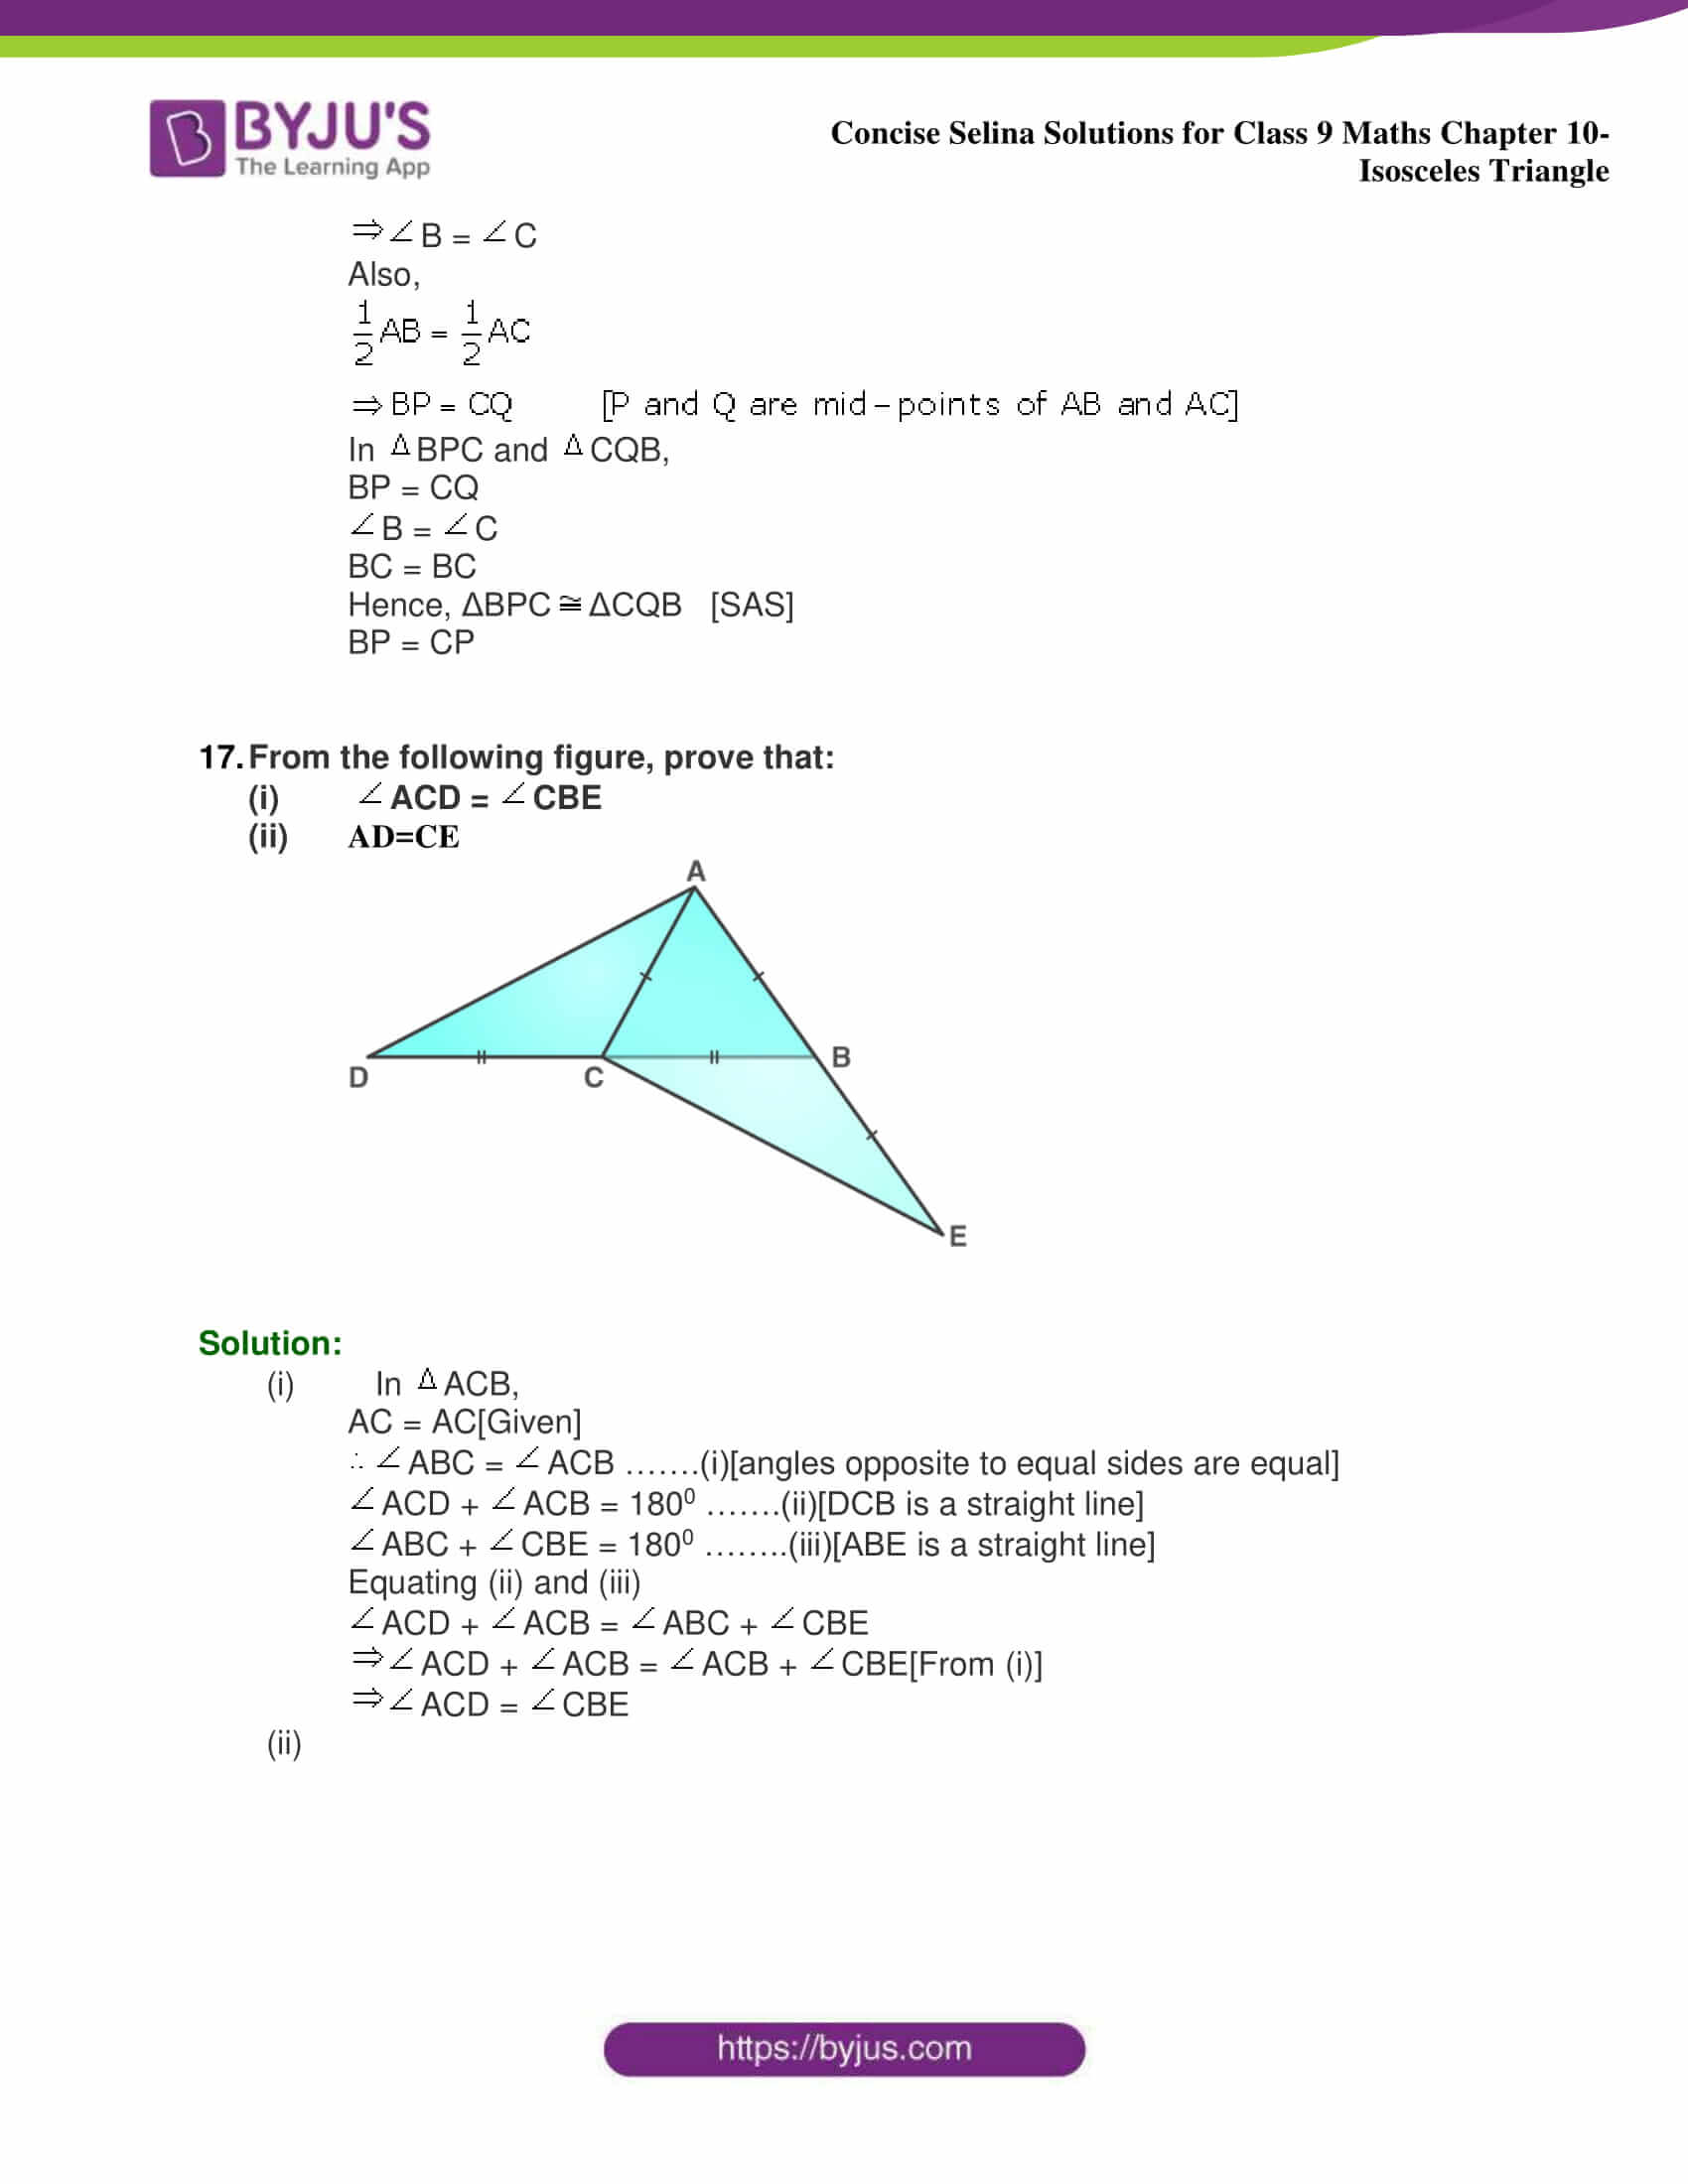 selina Solutions for Class 9 Maths Chapter 10 part 36